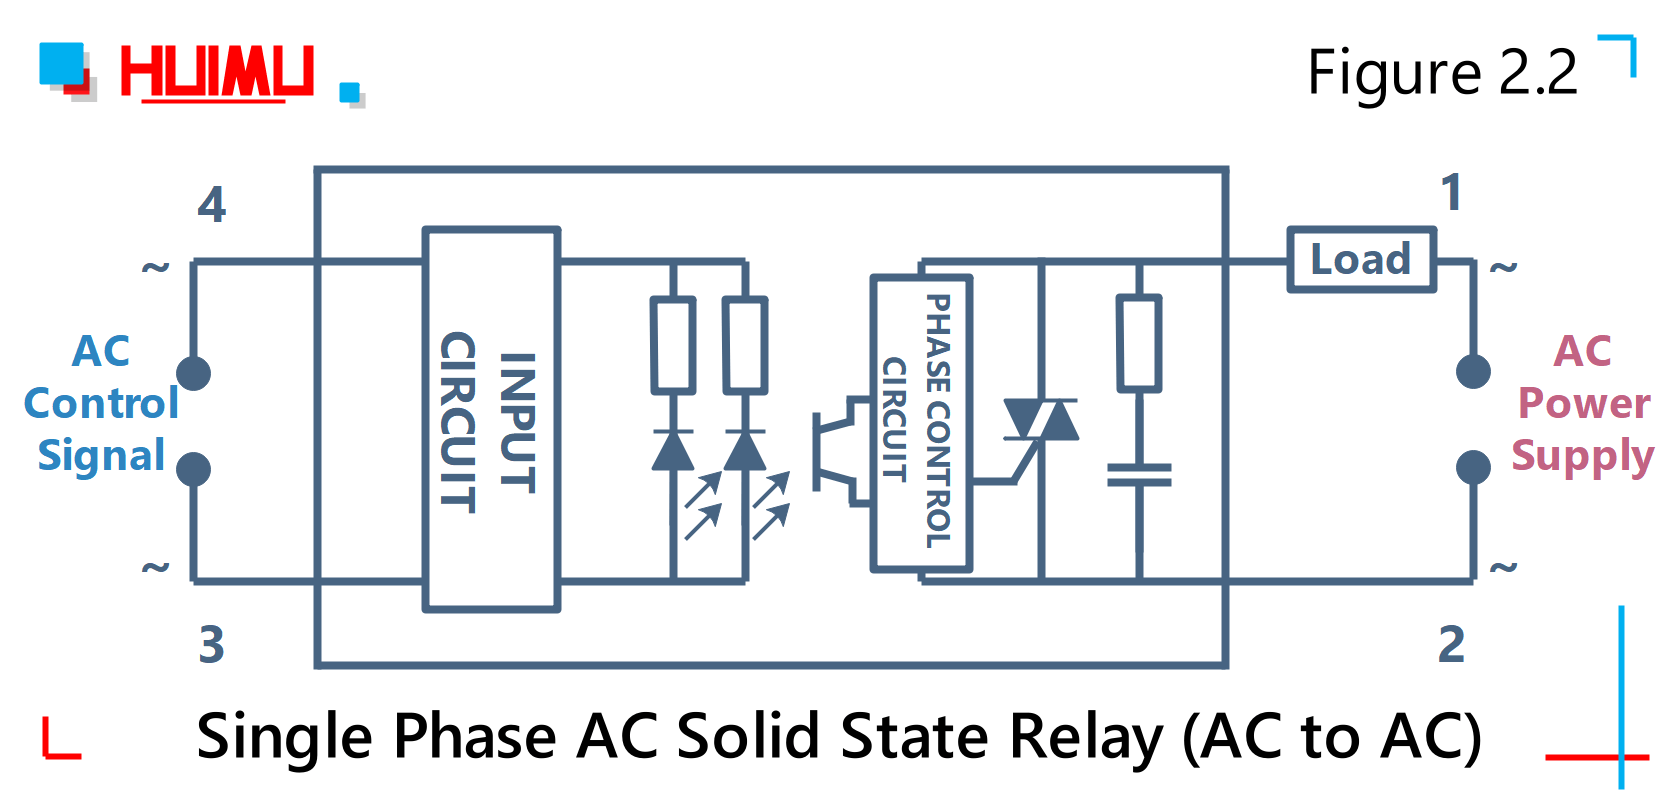 hight resolution of wiring diagram and circuit diagram of mgr mager ac solid state relay ac to ac